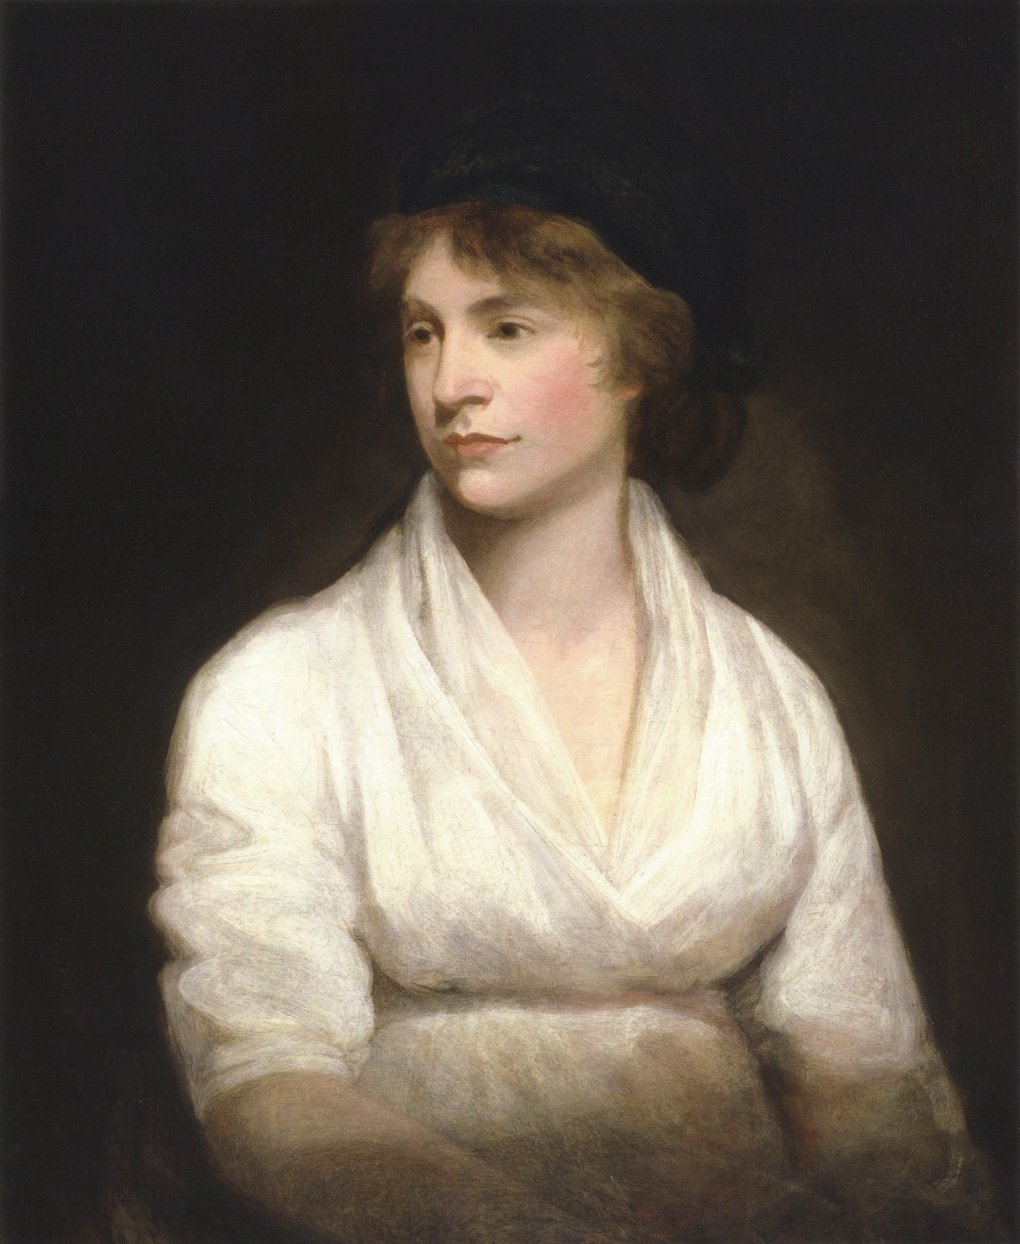 Mary_Wollstonecraft_by_John_Opie_c._1797.jpg